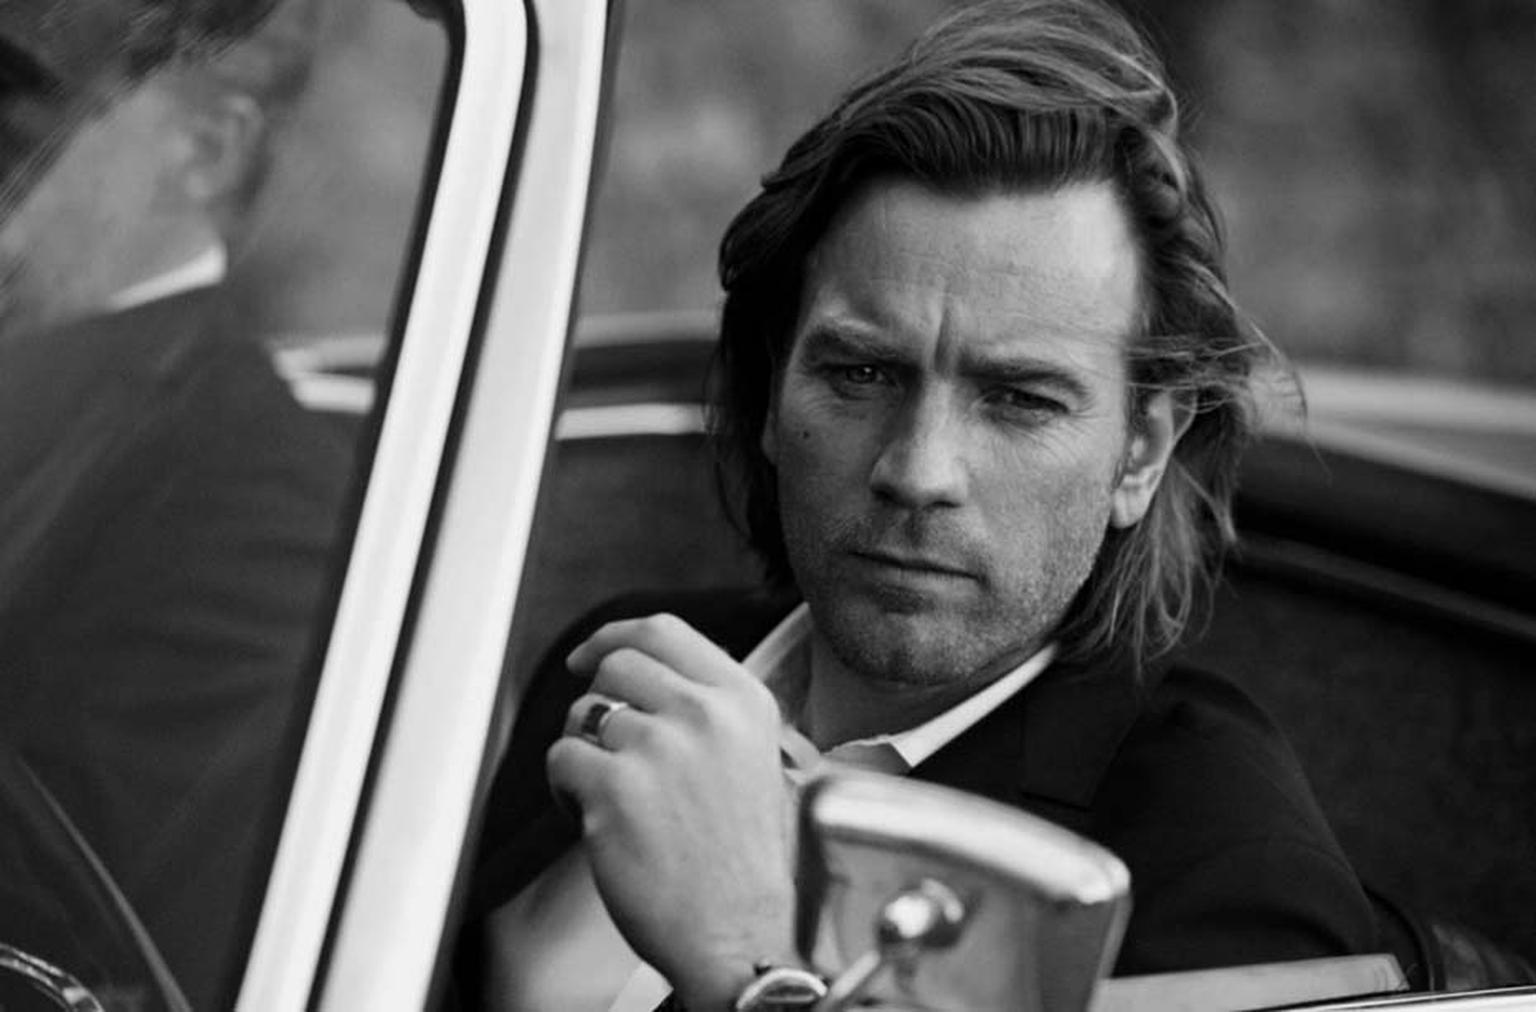 A suave Ewan McGregor on the set of the IWC Portofino Midsize shoot.